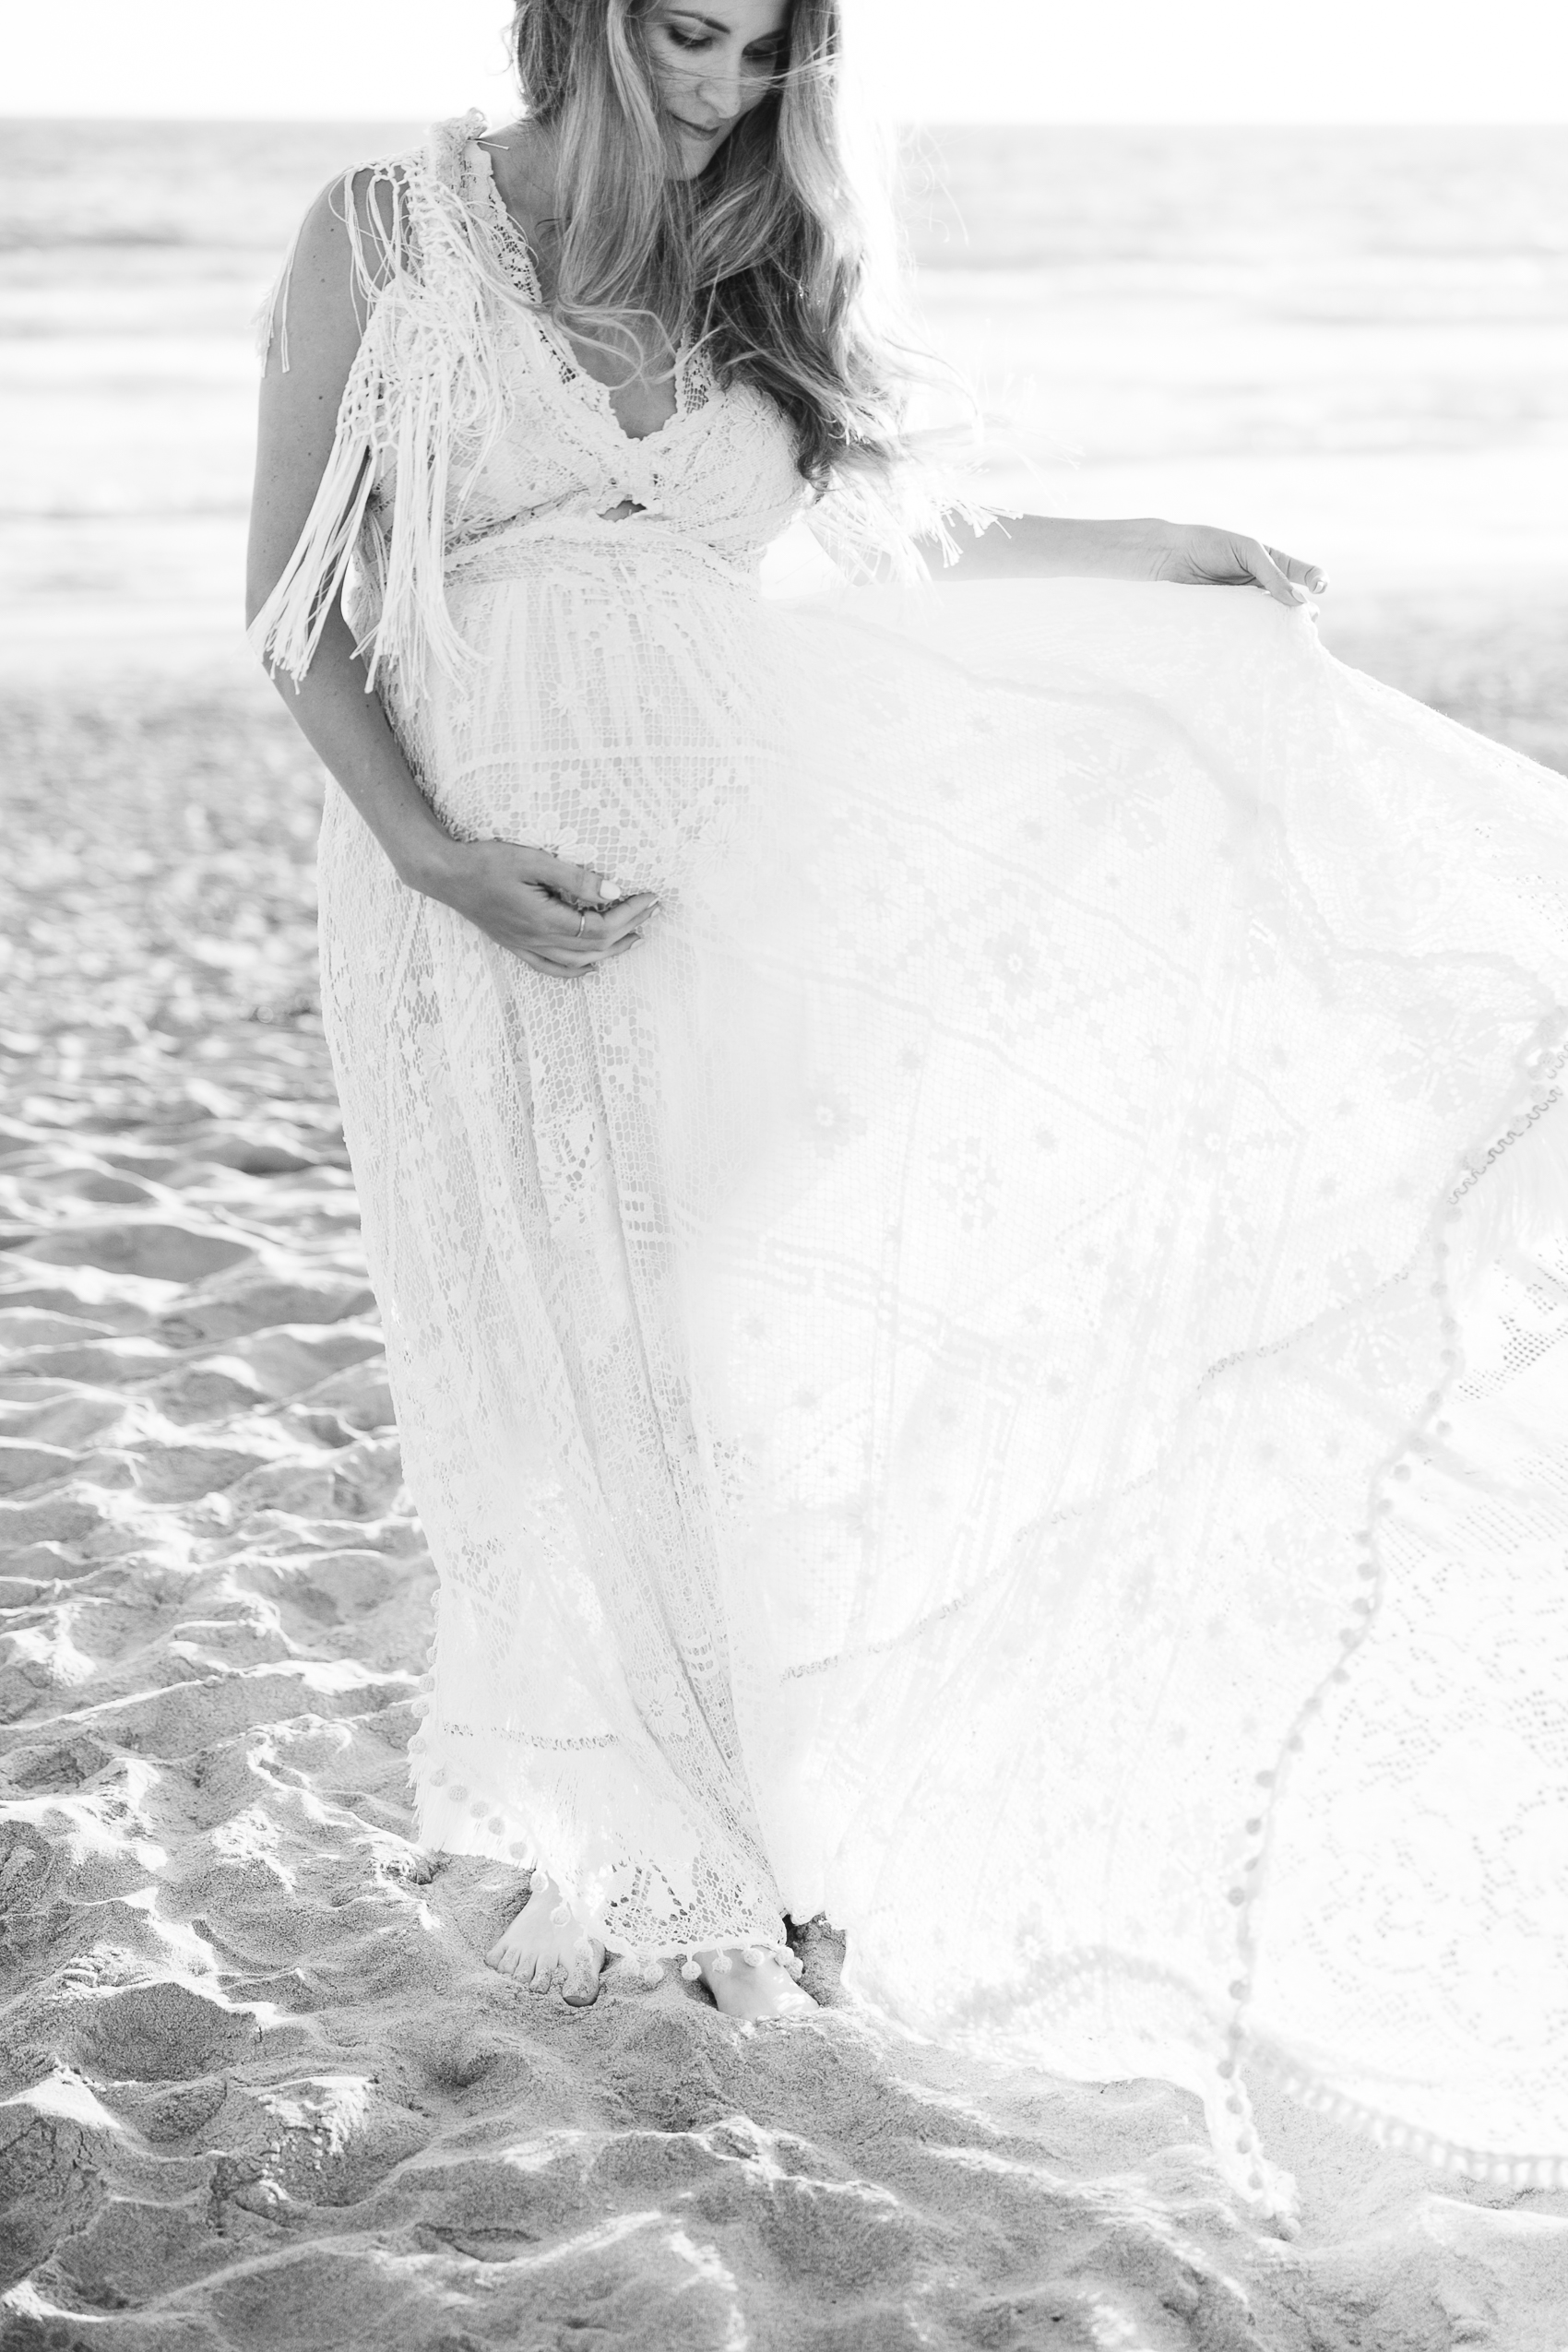 Los_Angeles_Family_Photographer_Maternity_Photos_Baby_Pregnancy_Venice_Beach_Golden_Hour-0938.jpg